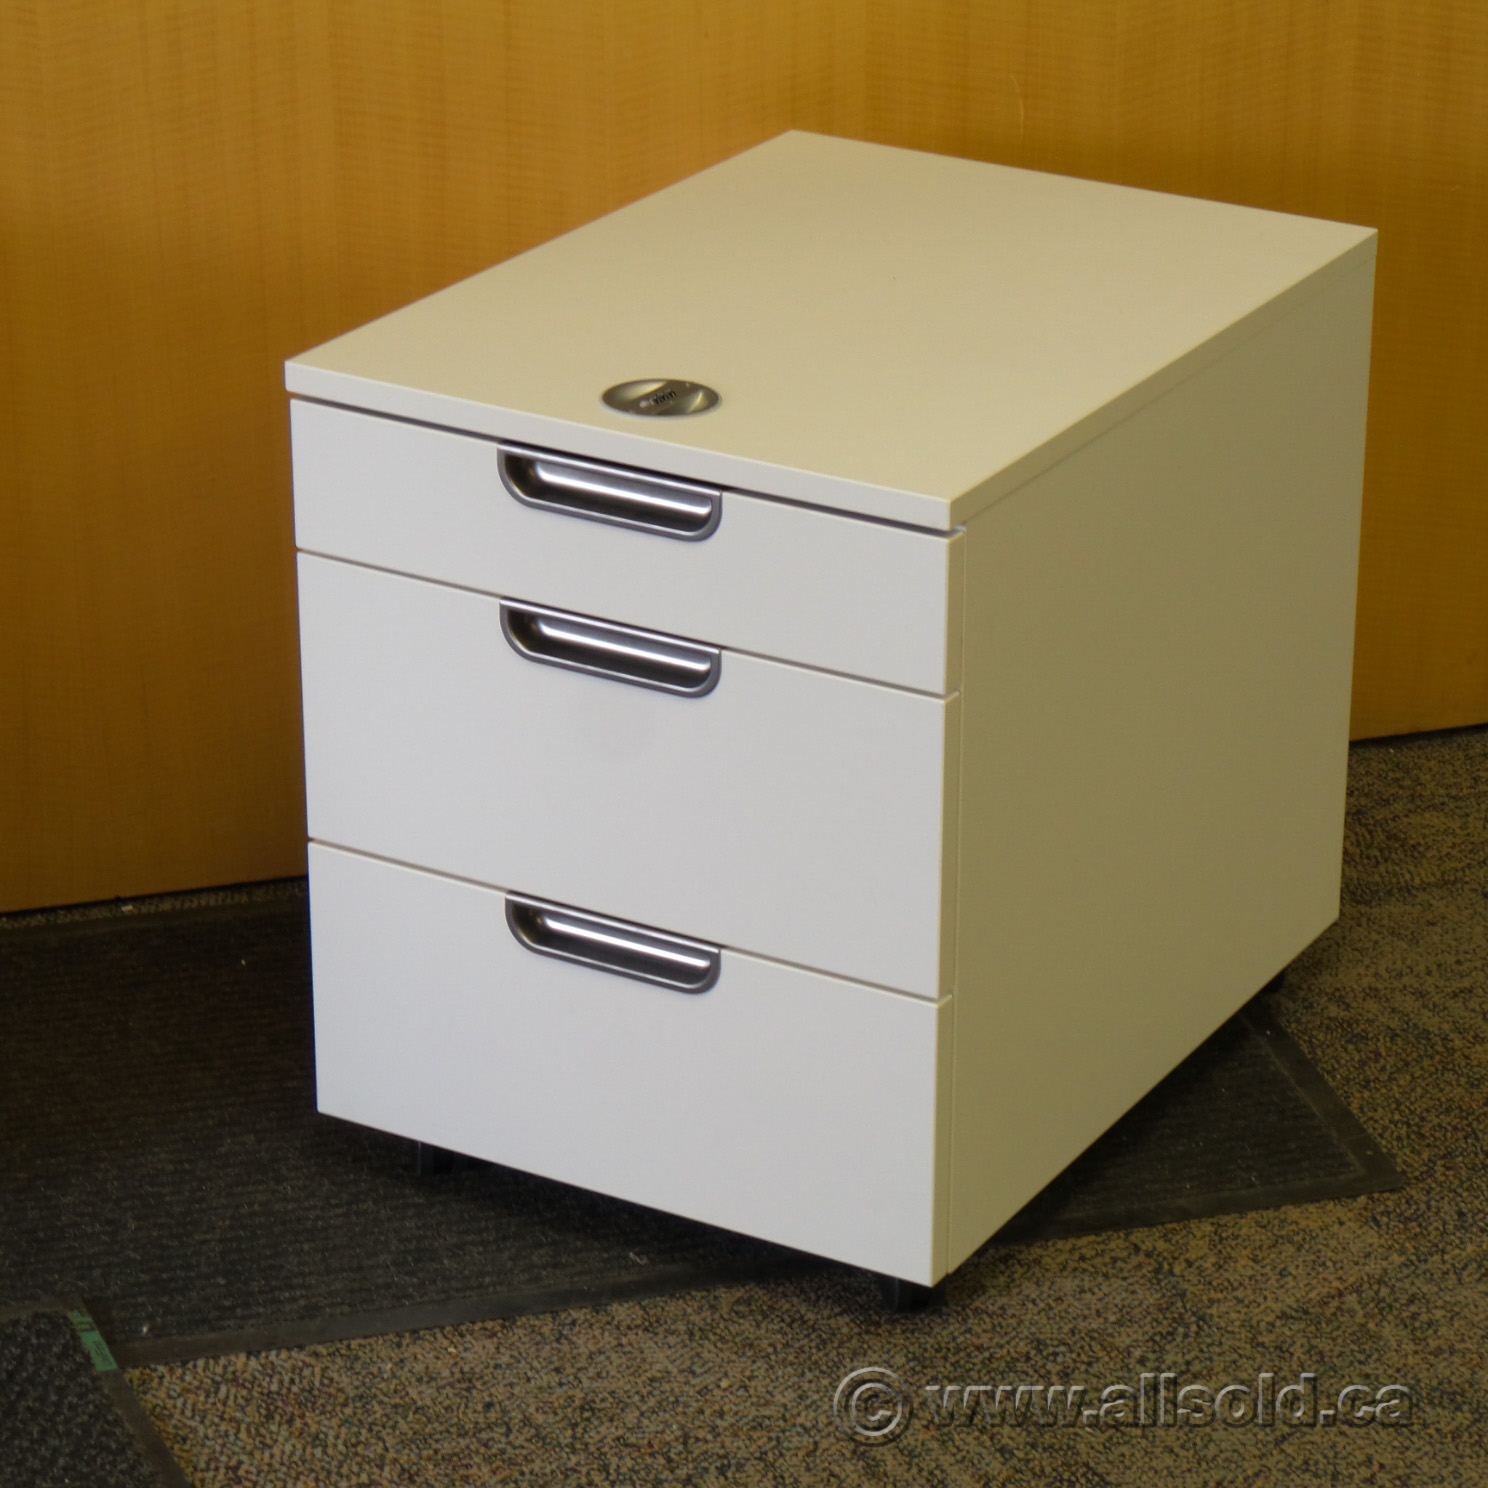 Image of: Ikea Galant White 3 Drawer Rolling Pedestal Allsold Ca Buy Sell Used Office Furniture Calgary